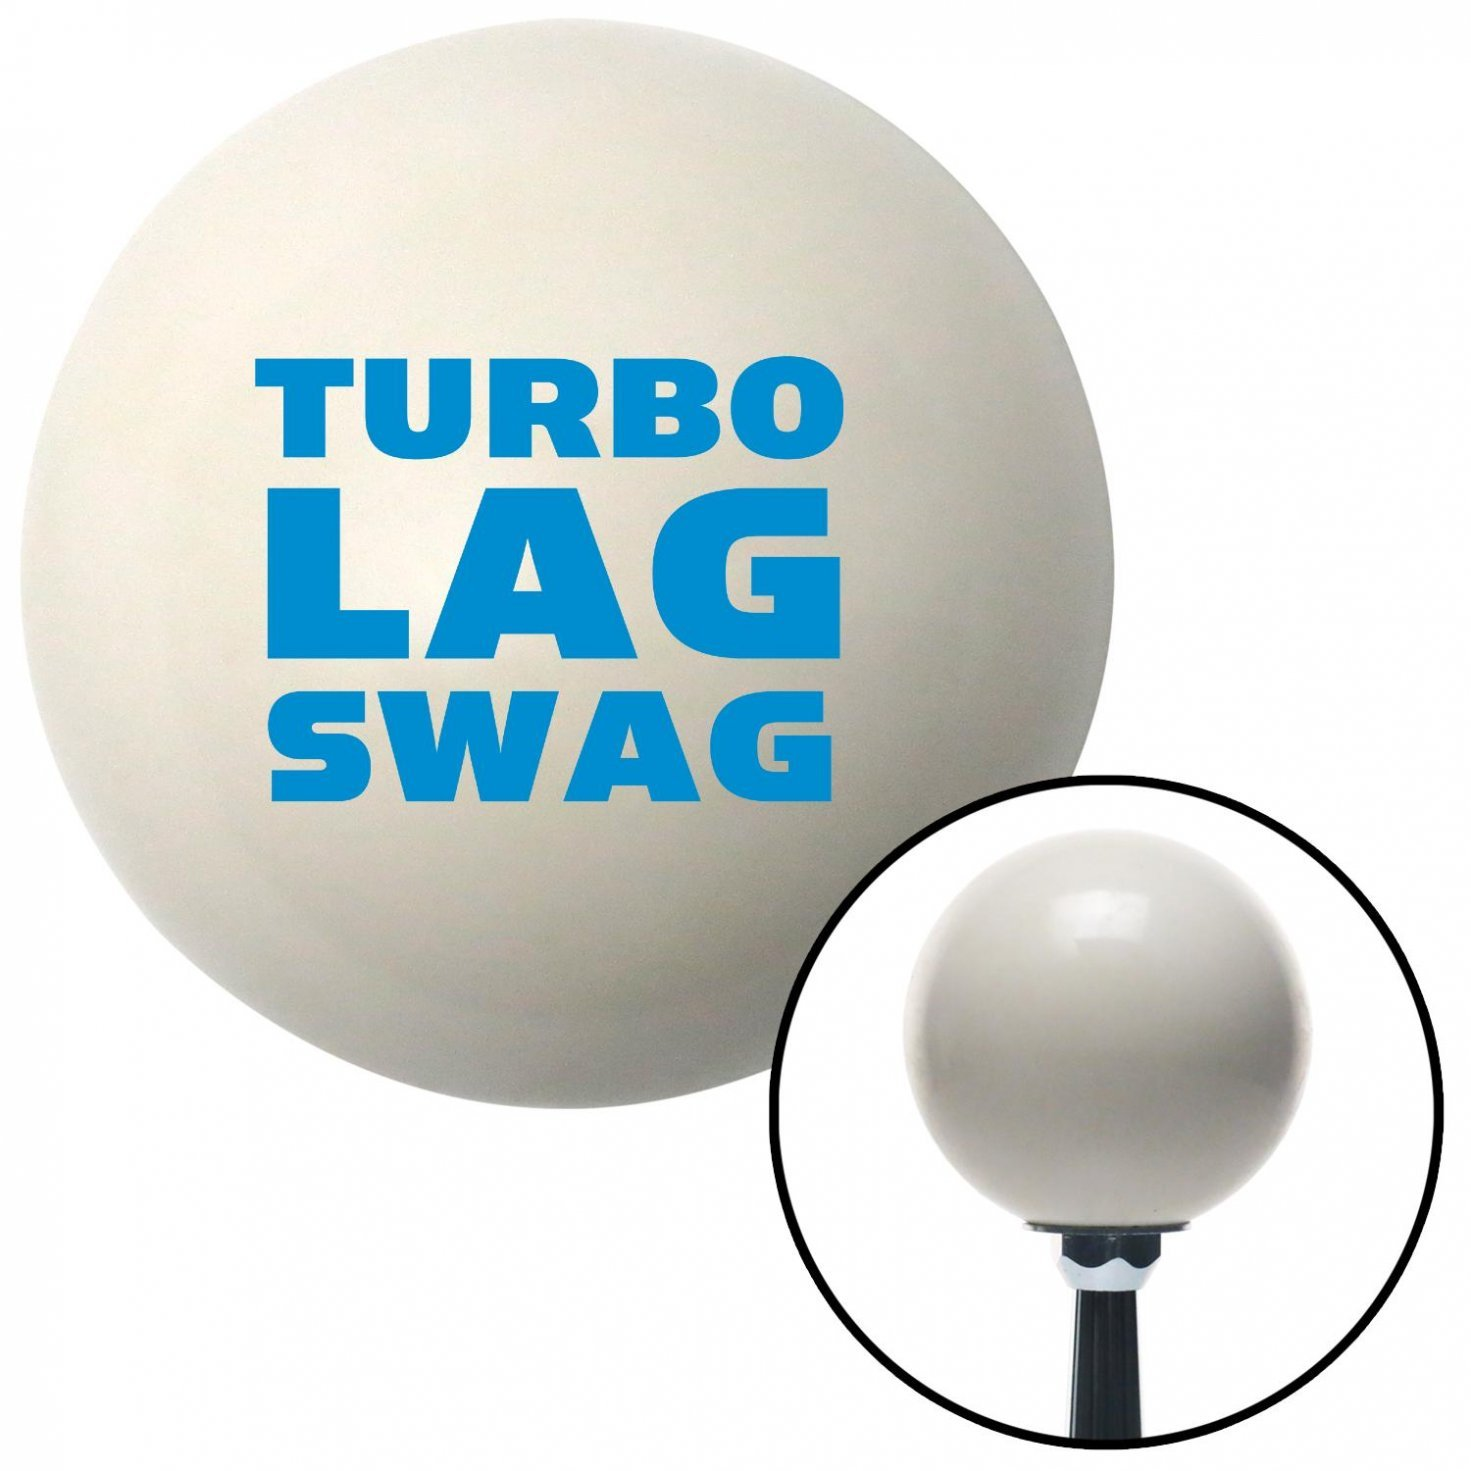 American Shifter 34453 Ivory Shift Knob with 16mm x 1.5 Insert Blue Turbo Lag Swag